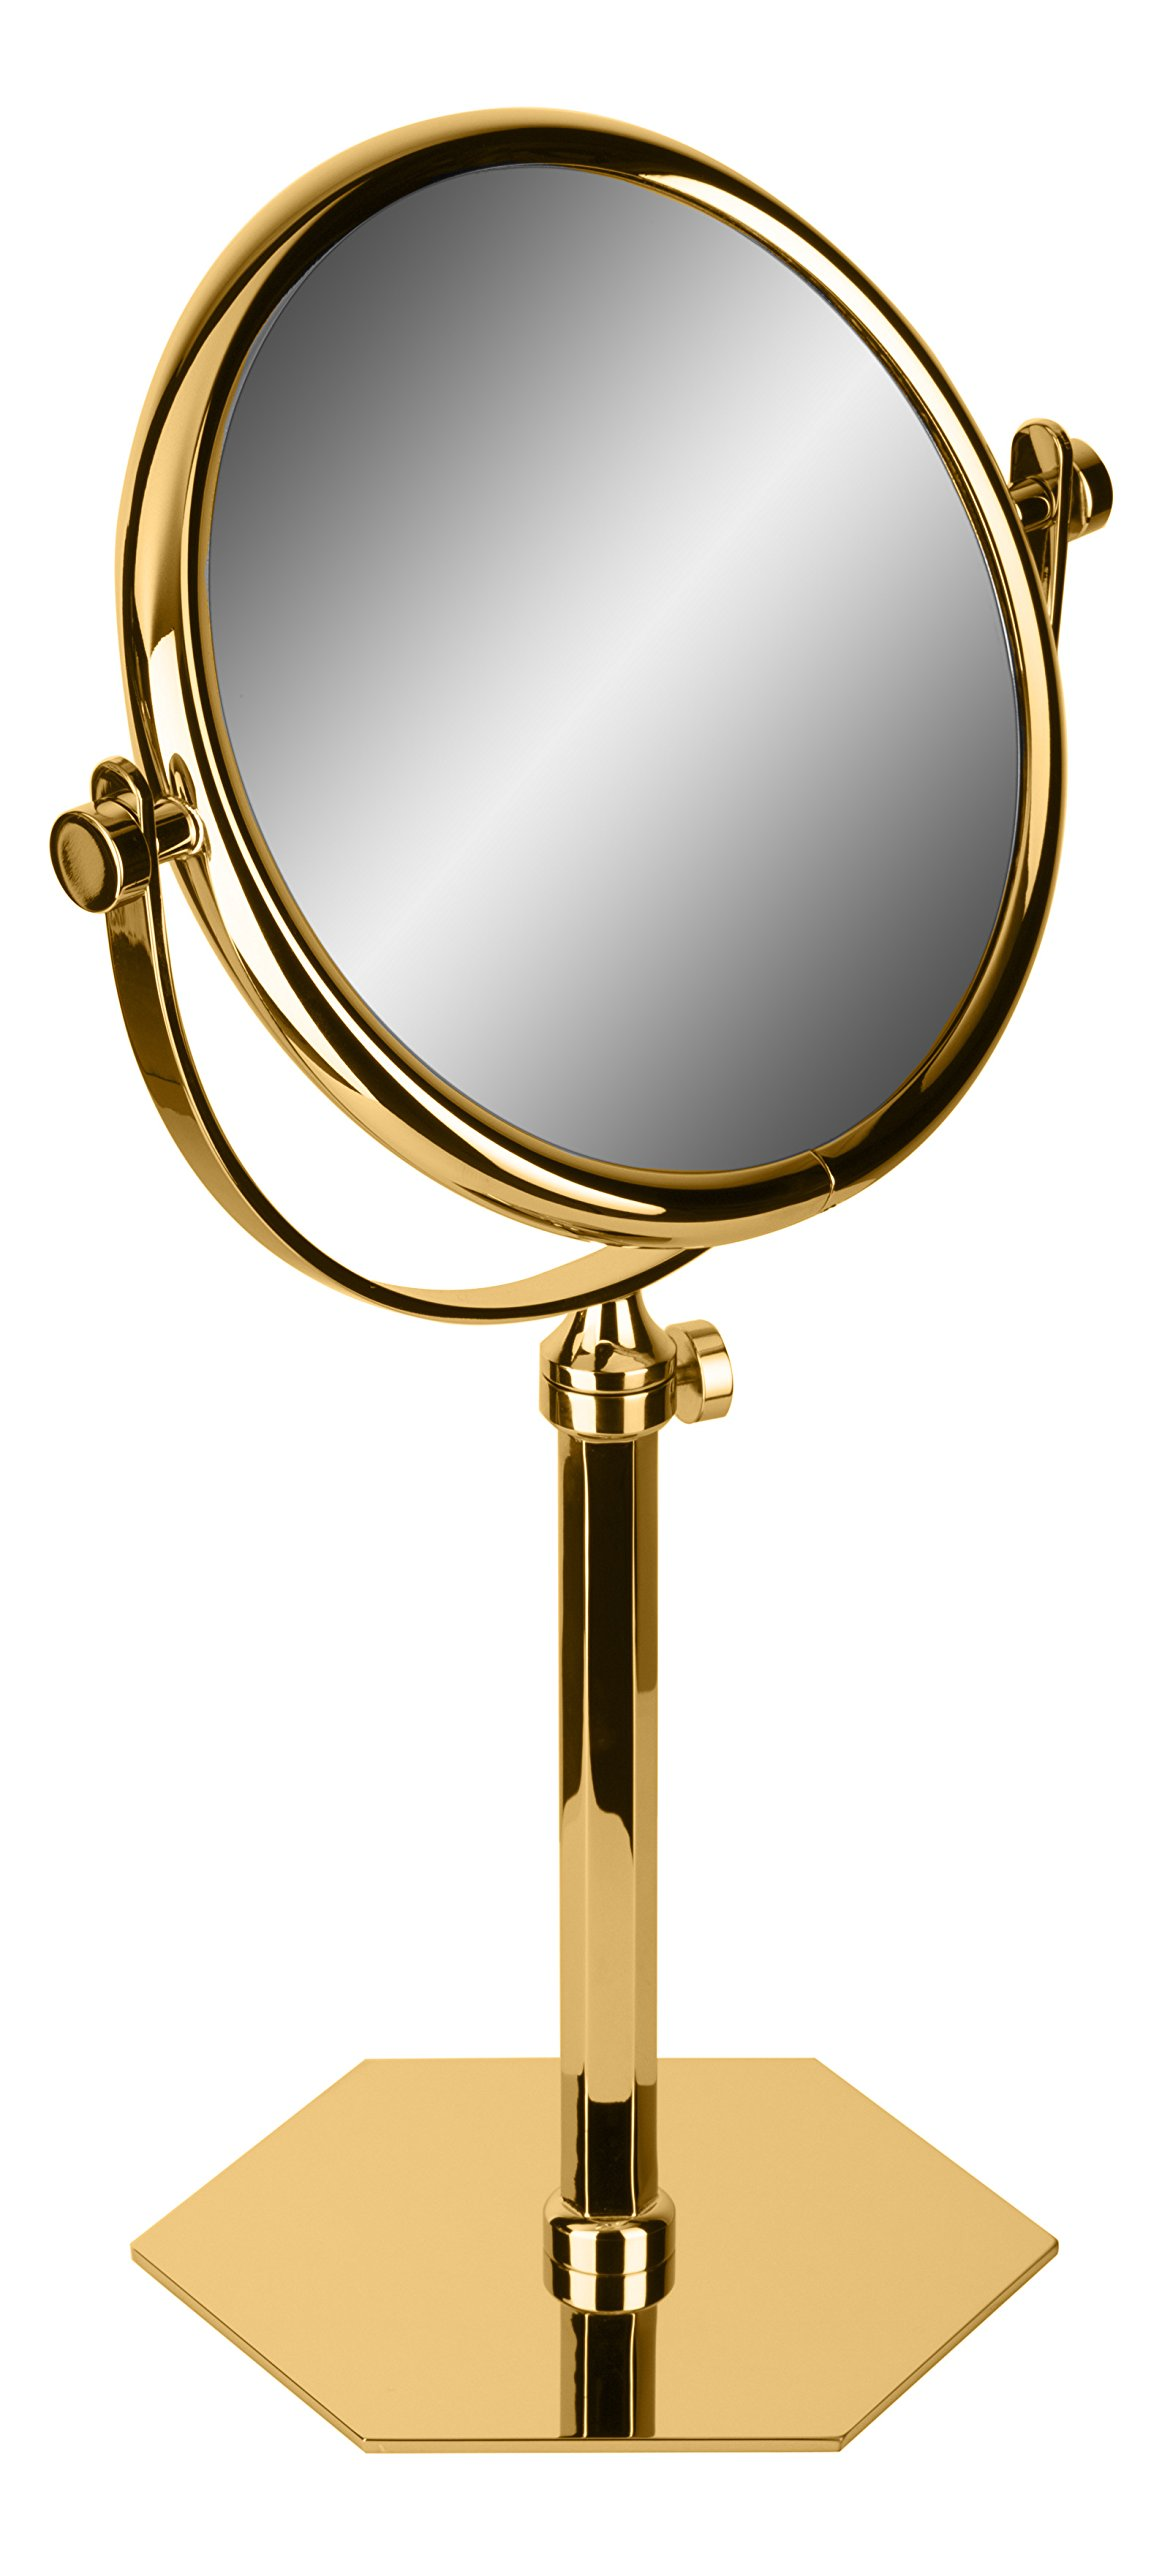 Hexagonal Table Double Sided Extendable Cosmetic Makeup Magnifying Mirror (Polished Gold, 5X Magnification)